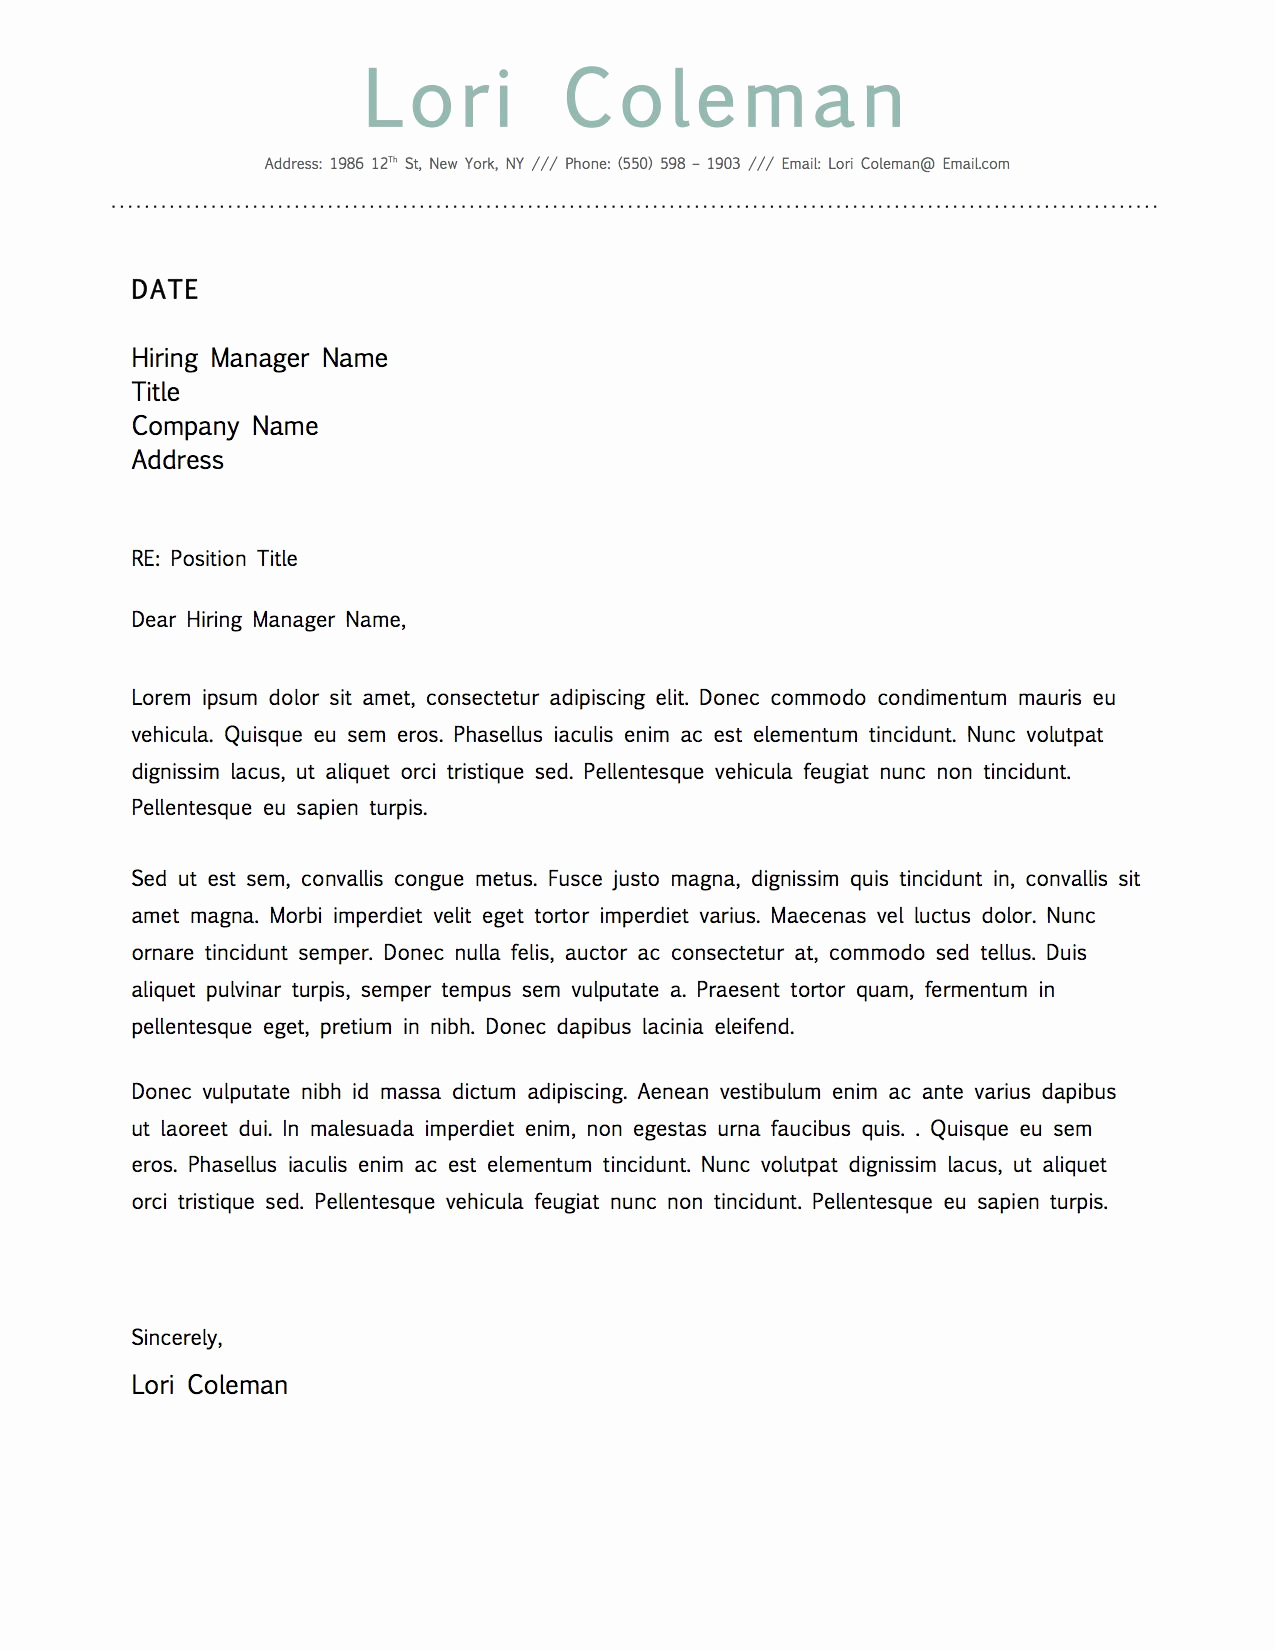 Cover Letter Word Template Elegant Simple Beautiful Cover Letter Template for Microsoft Word